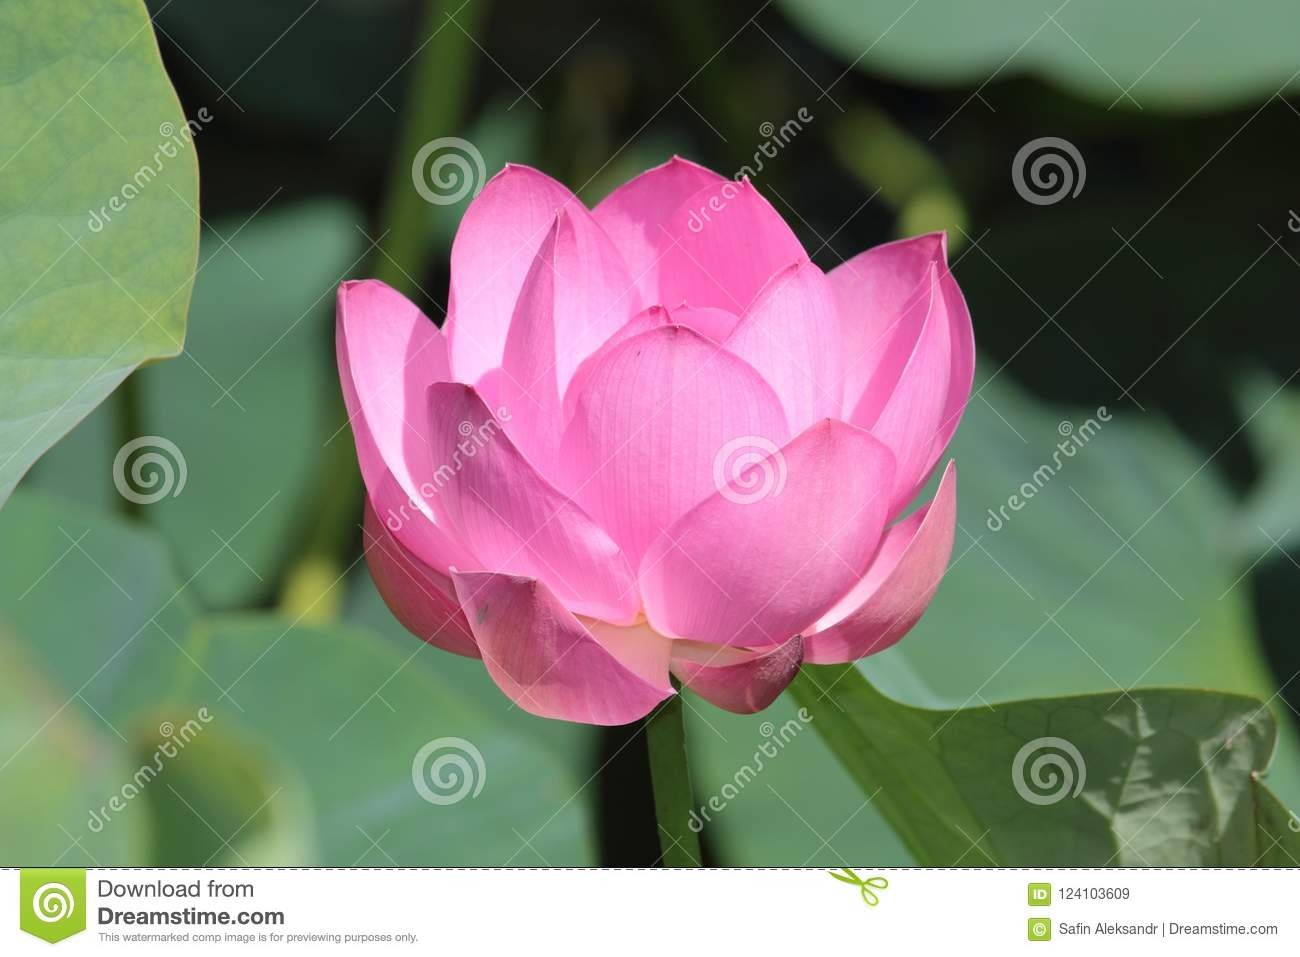 Large lotus flower stock image image of pink flower 124103609 download large lotus flower stock image image of pink flower 124103609 mightylinksfo